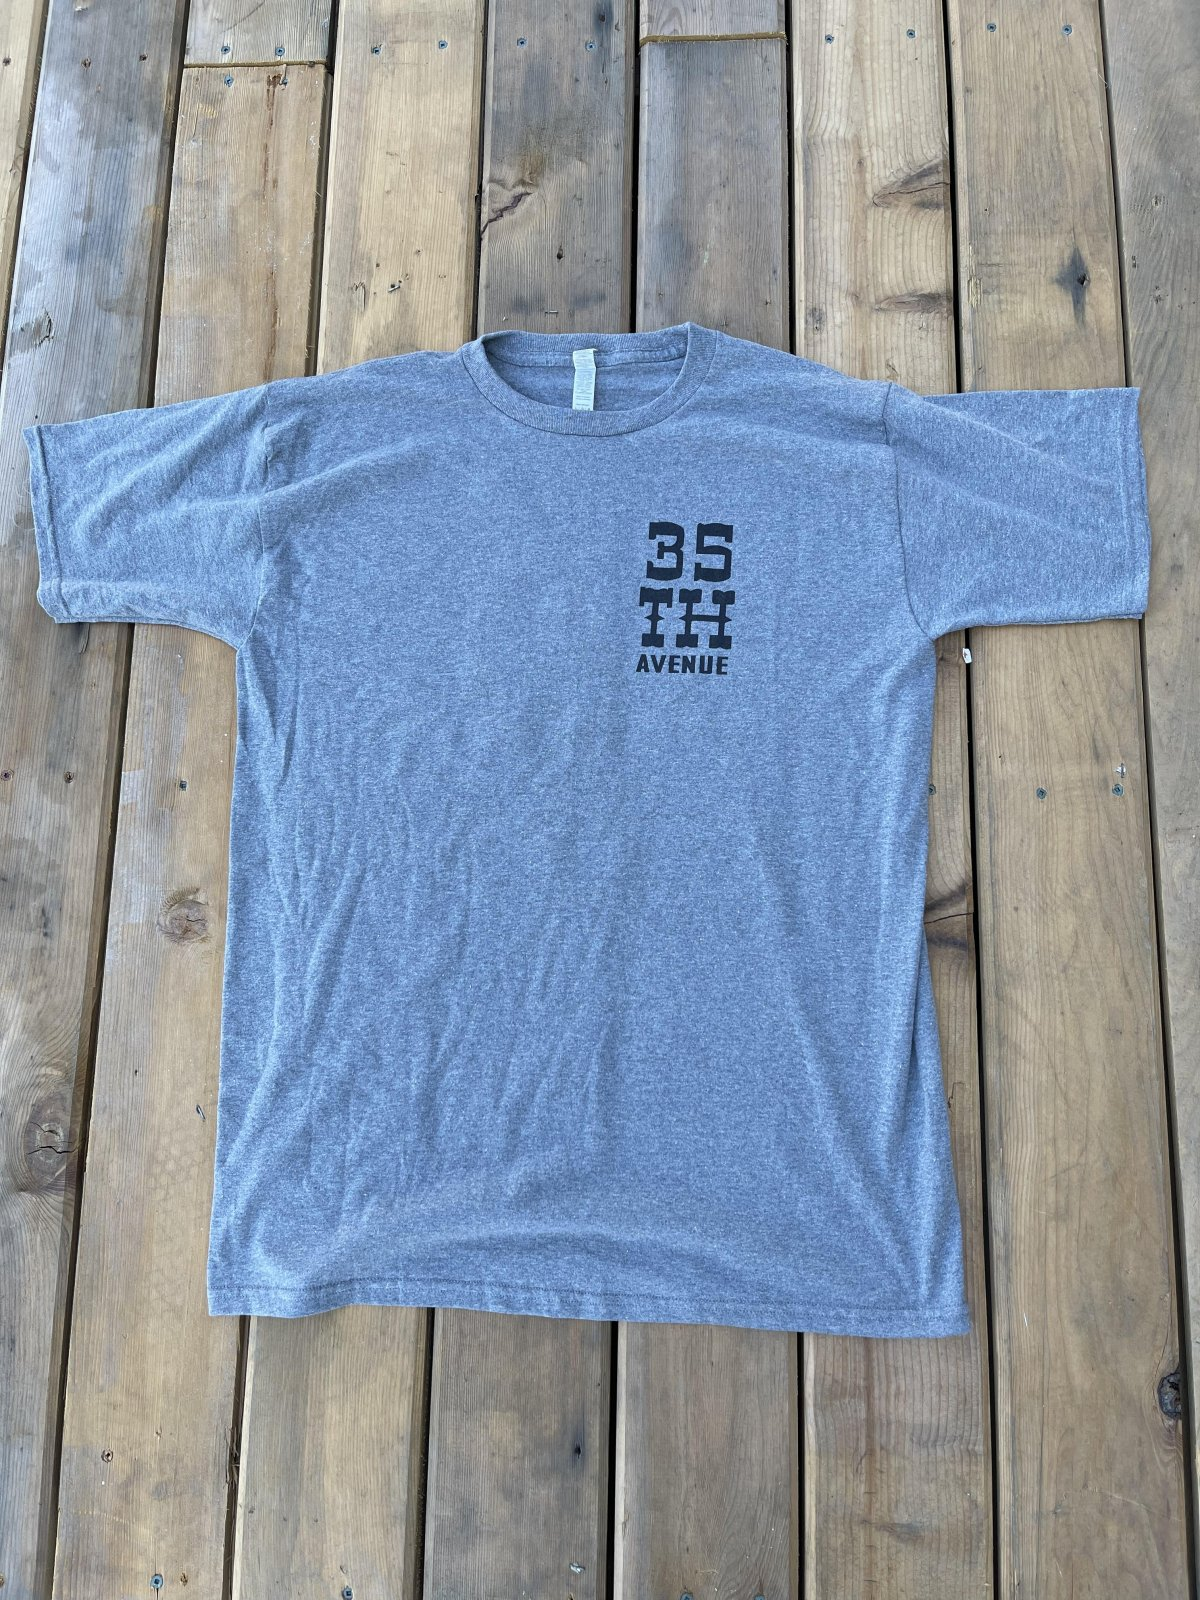 35th Snake n Boot s/s t shirt heather grey